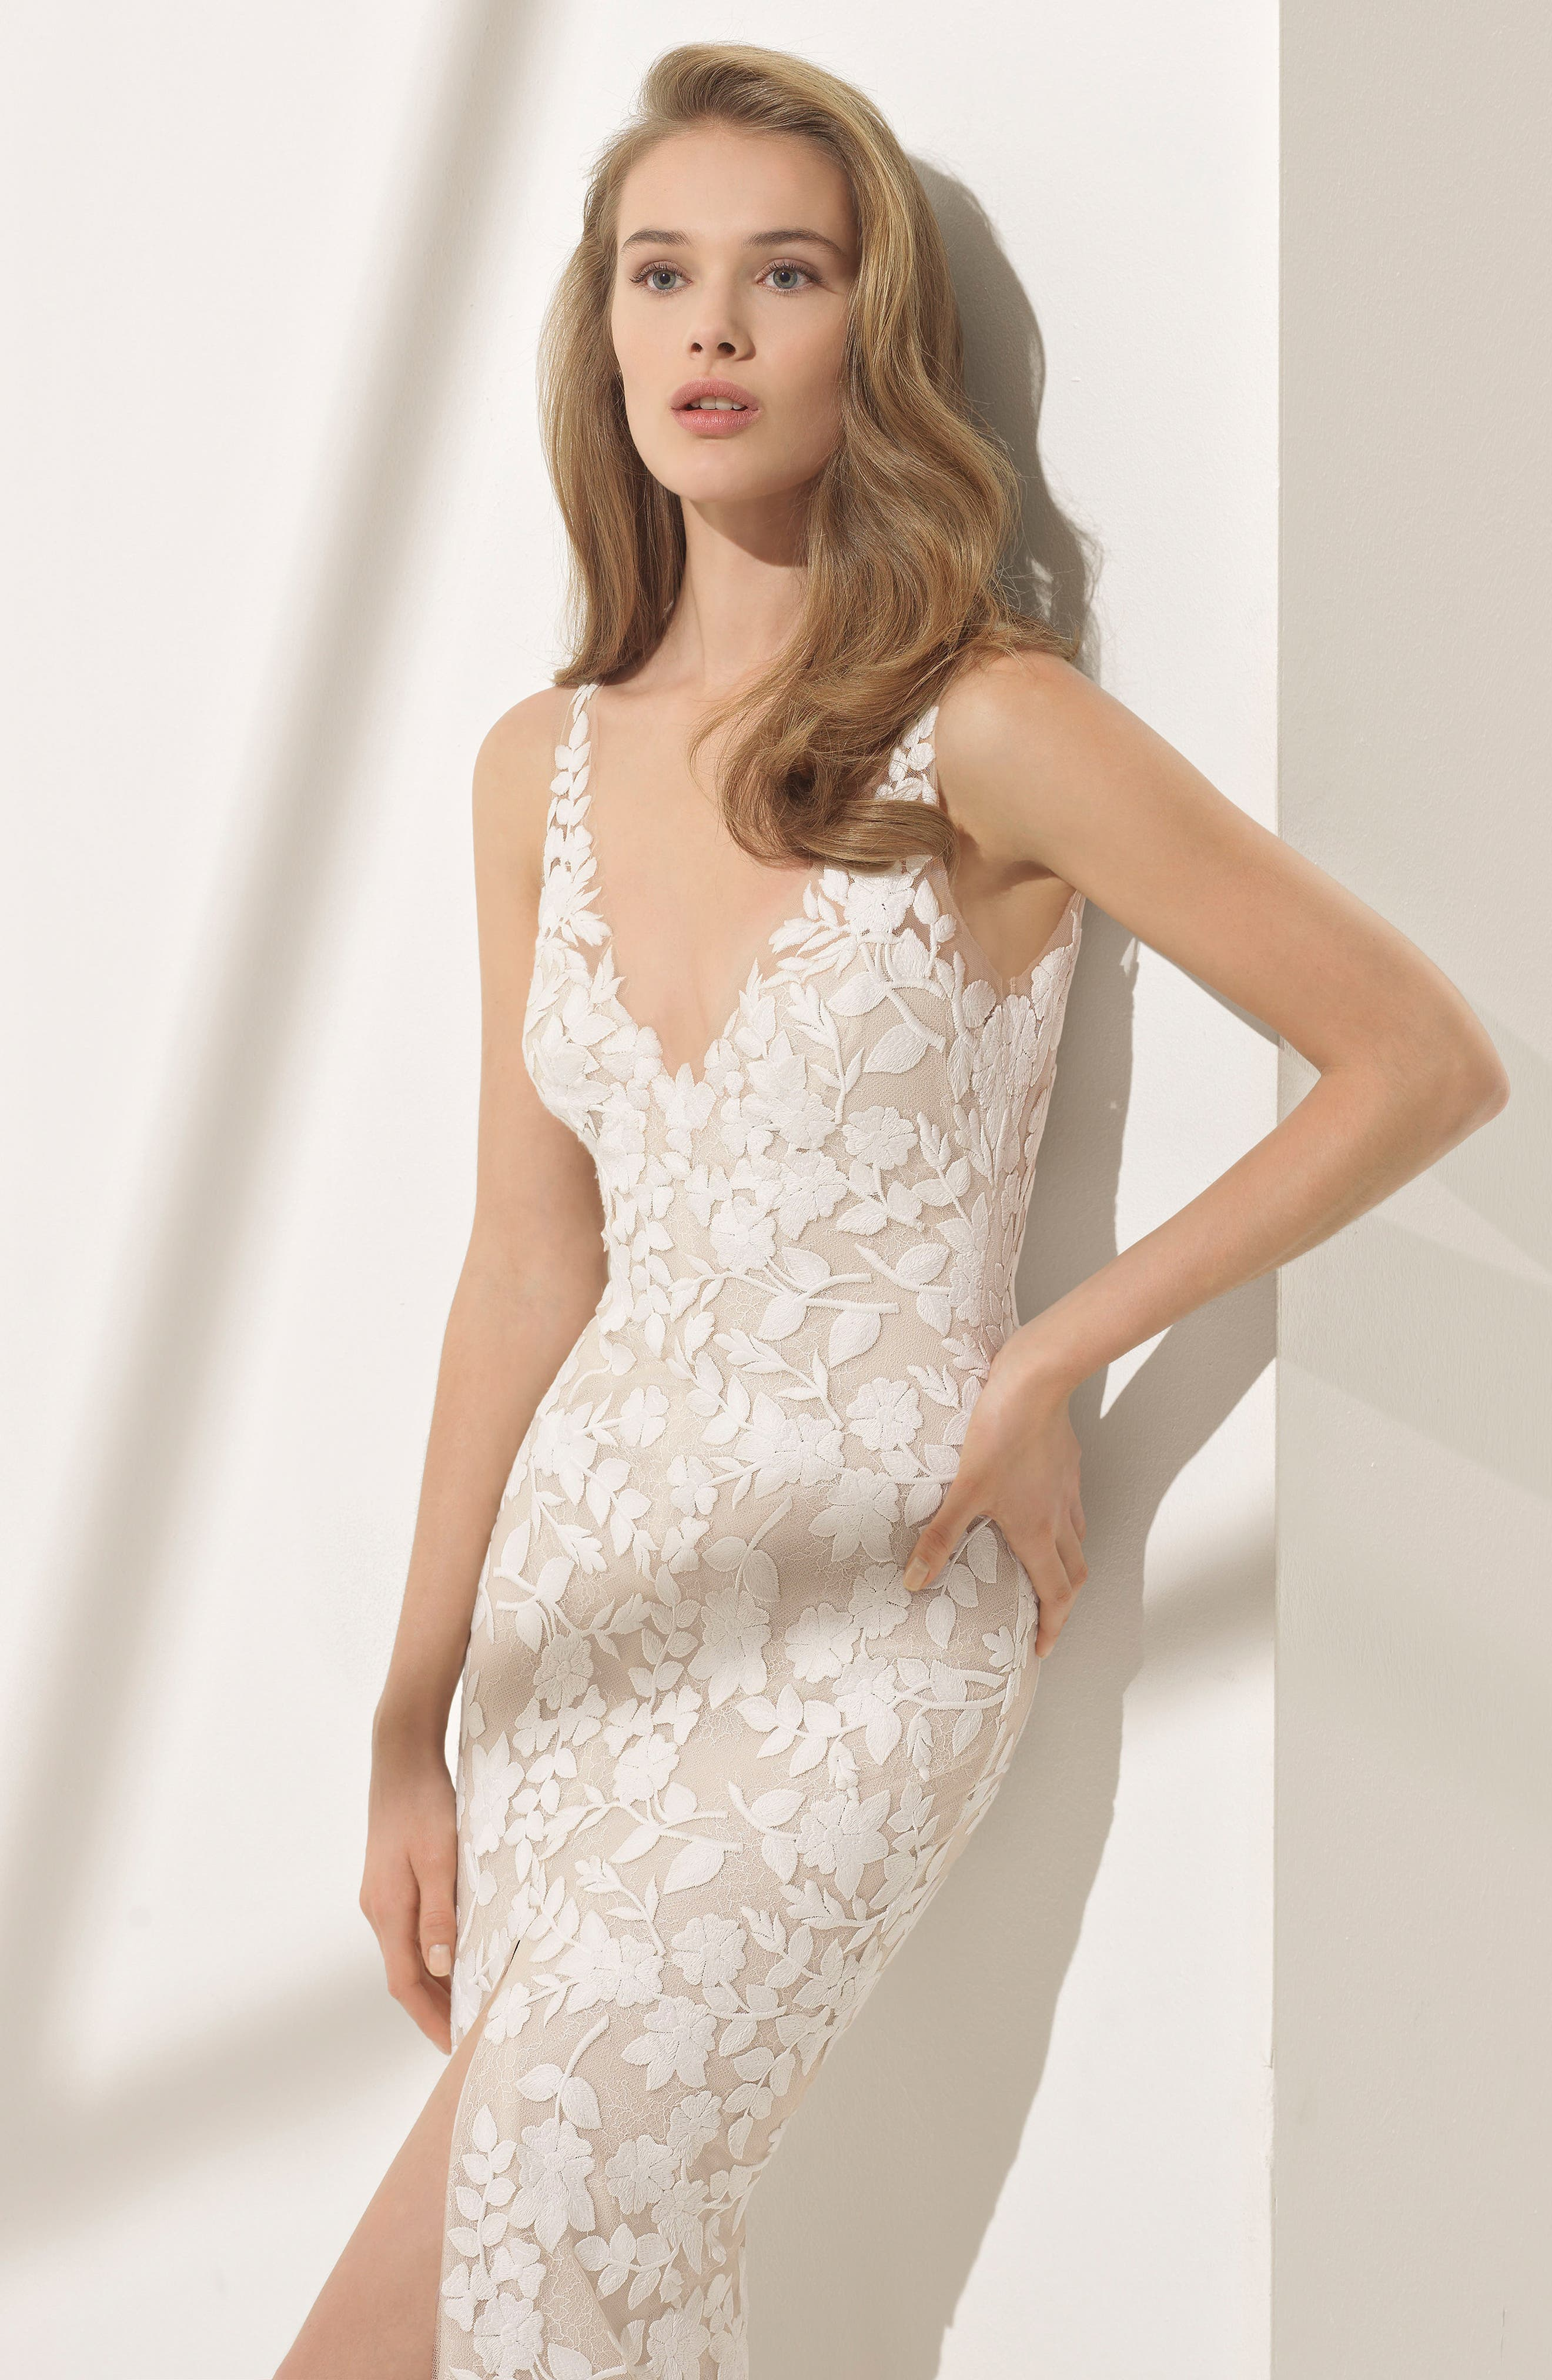 Rosa Clará Couture Panal Guipure Lace Mermaid Gown,                             Alternate thumbnail 3, color,                             NATURAL/ NUDE